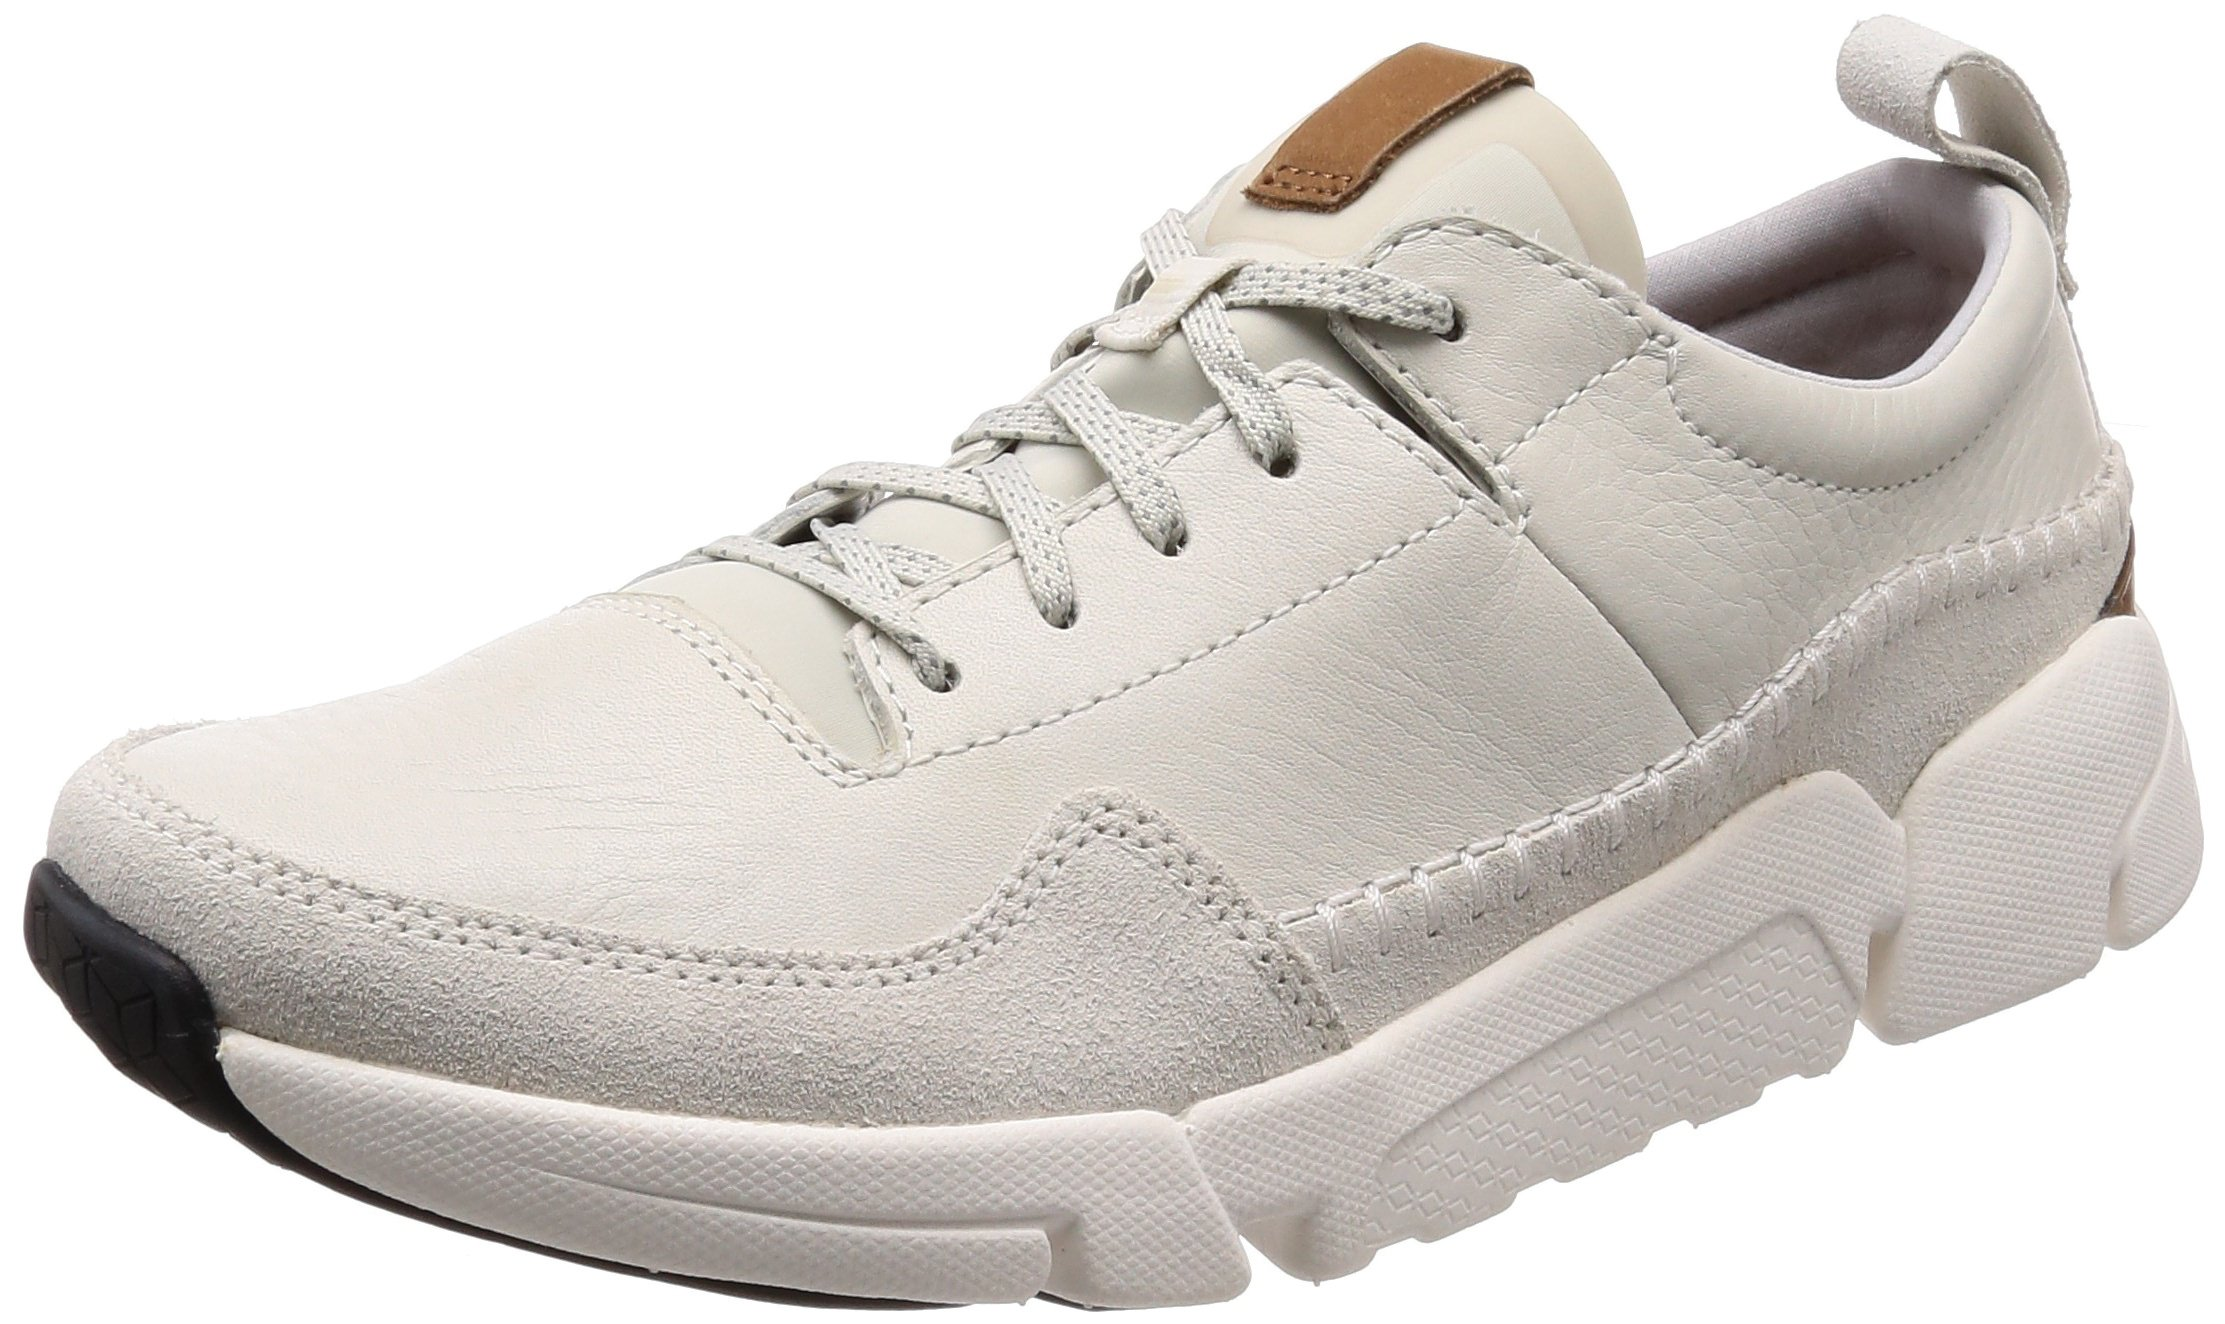 Basses RunSneakers HommeBlancwhite Clarks Triactive Eu Leather42 LSMVGqUzp